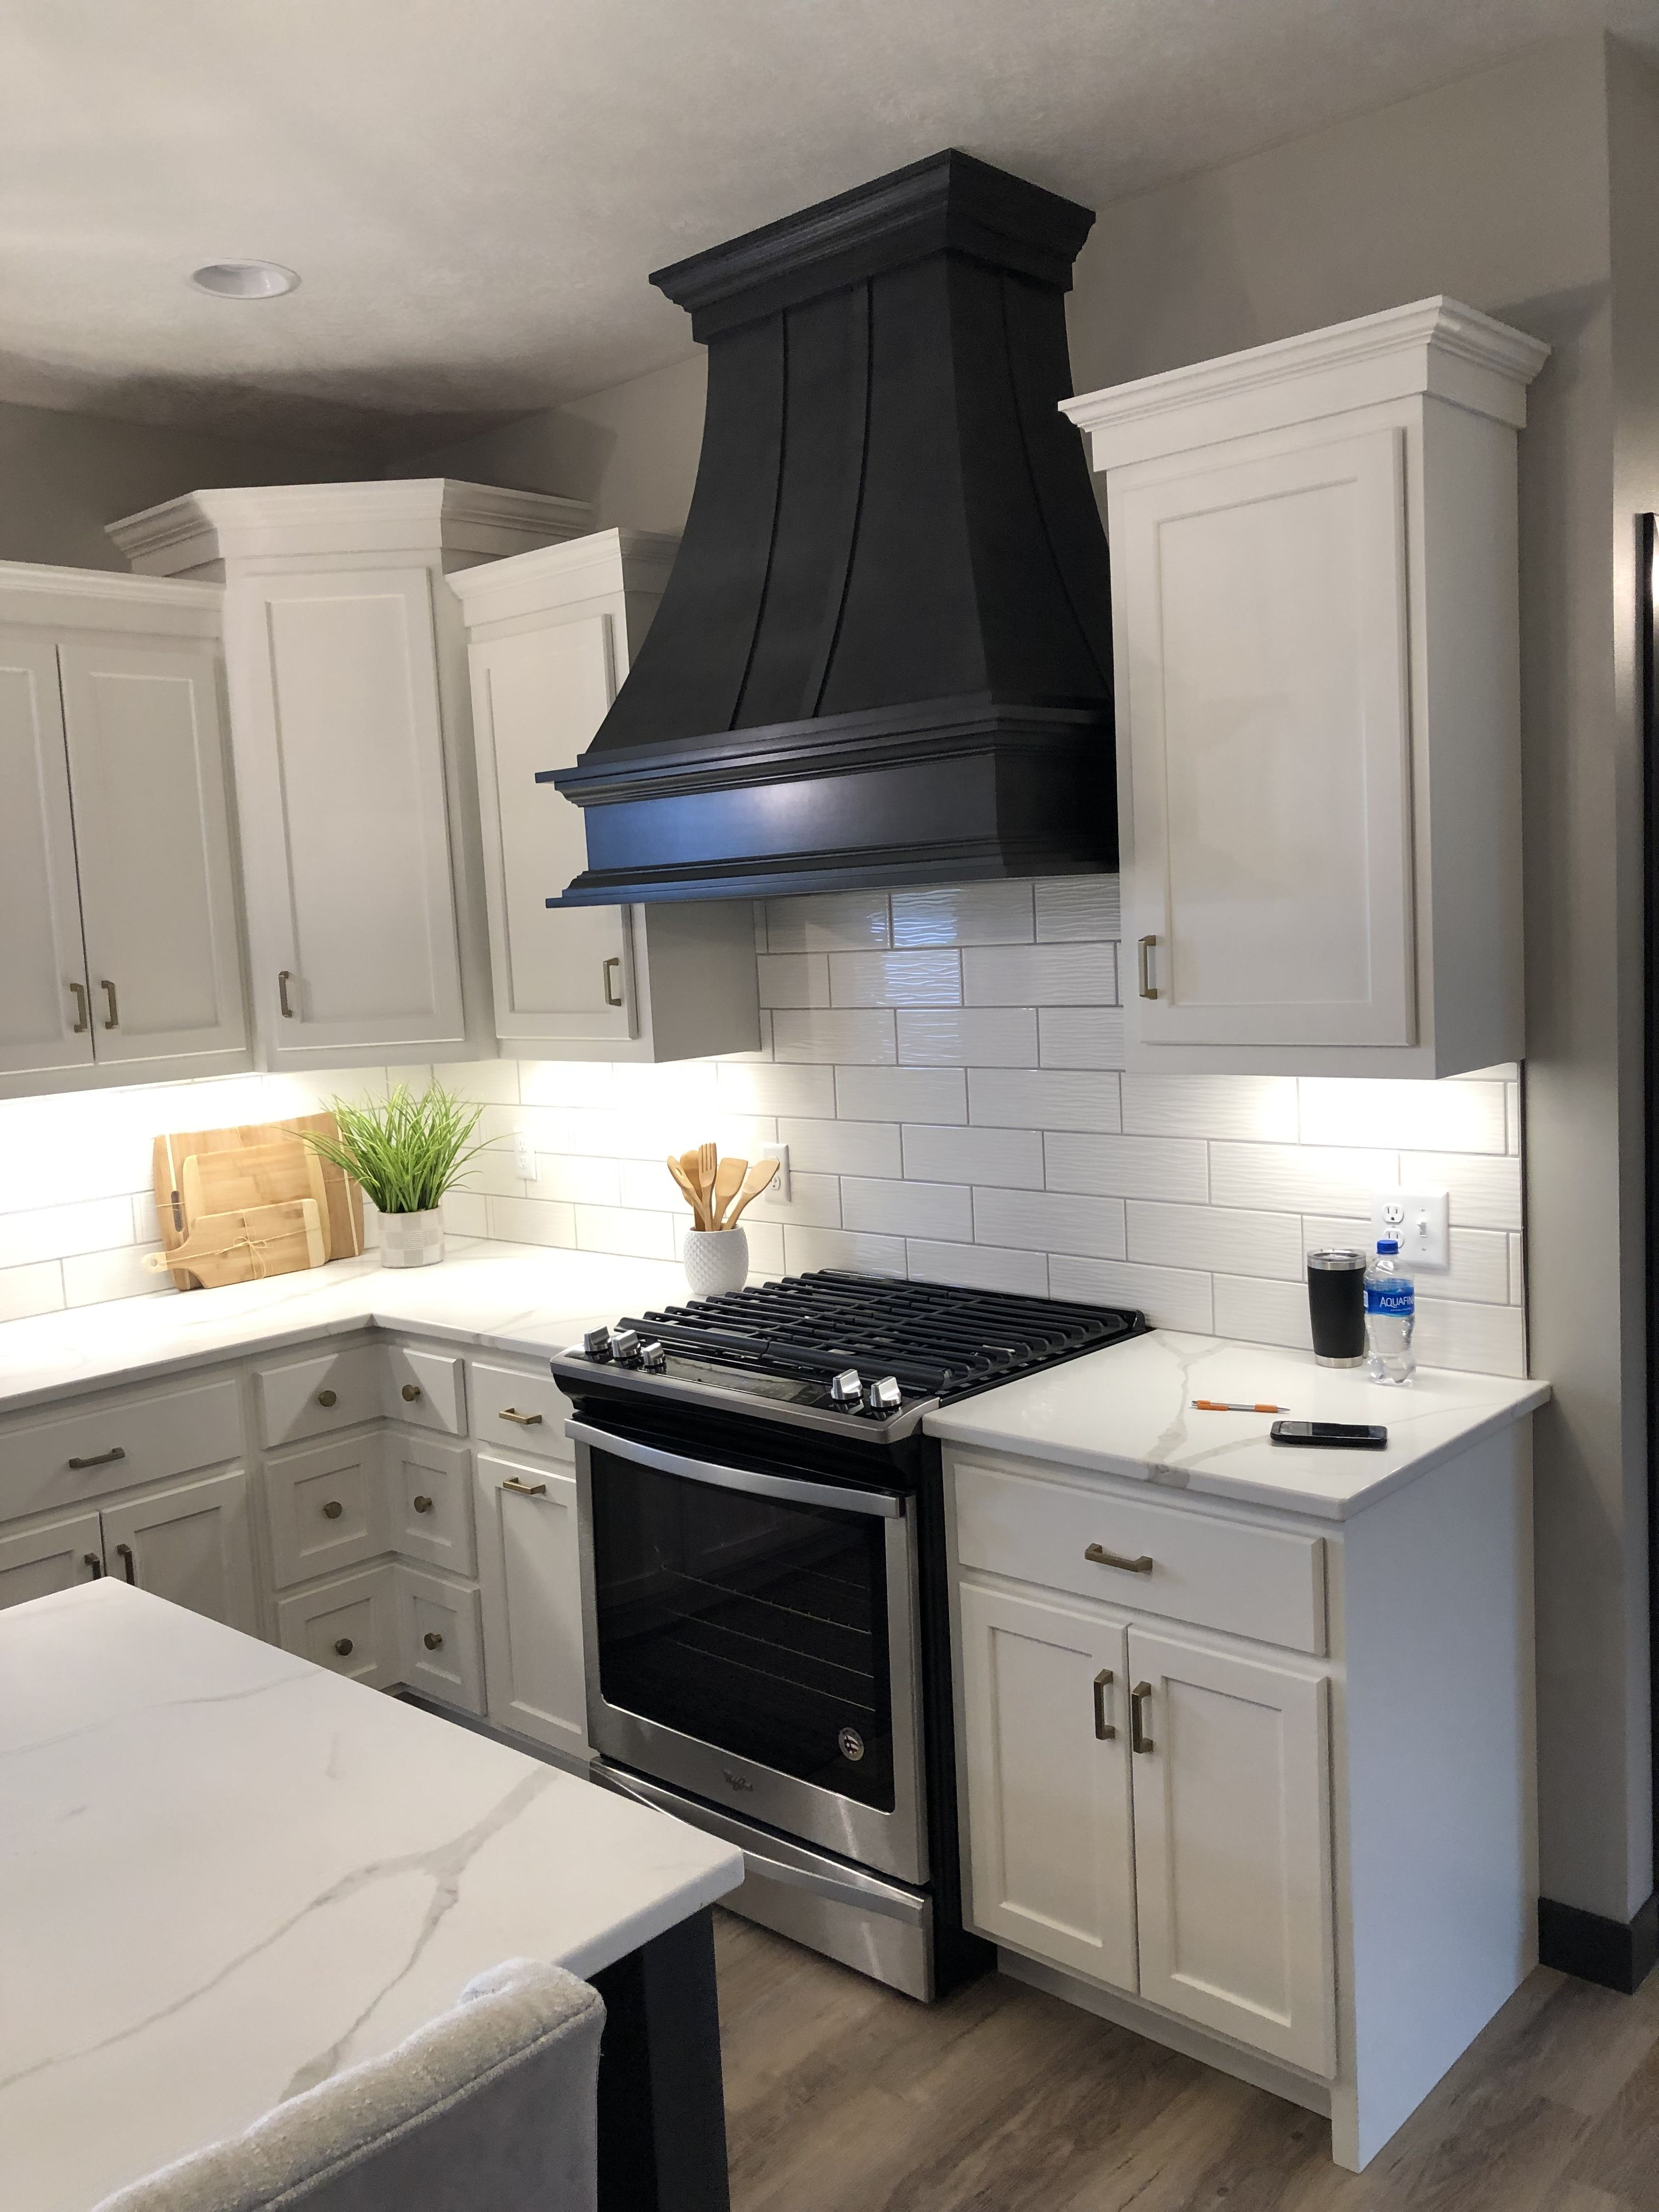 Pin By Amy Rans On The Monarch Home Kitchen Cabinets Kitchen